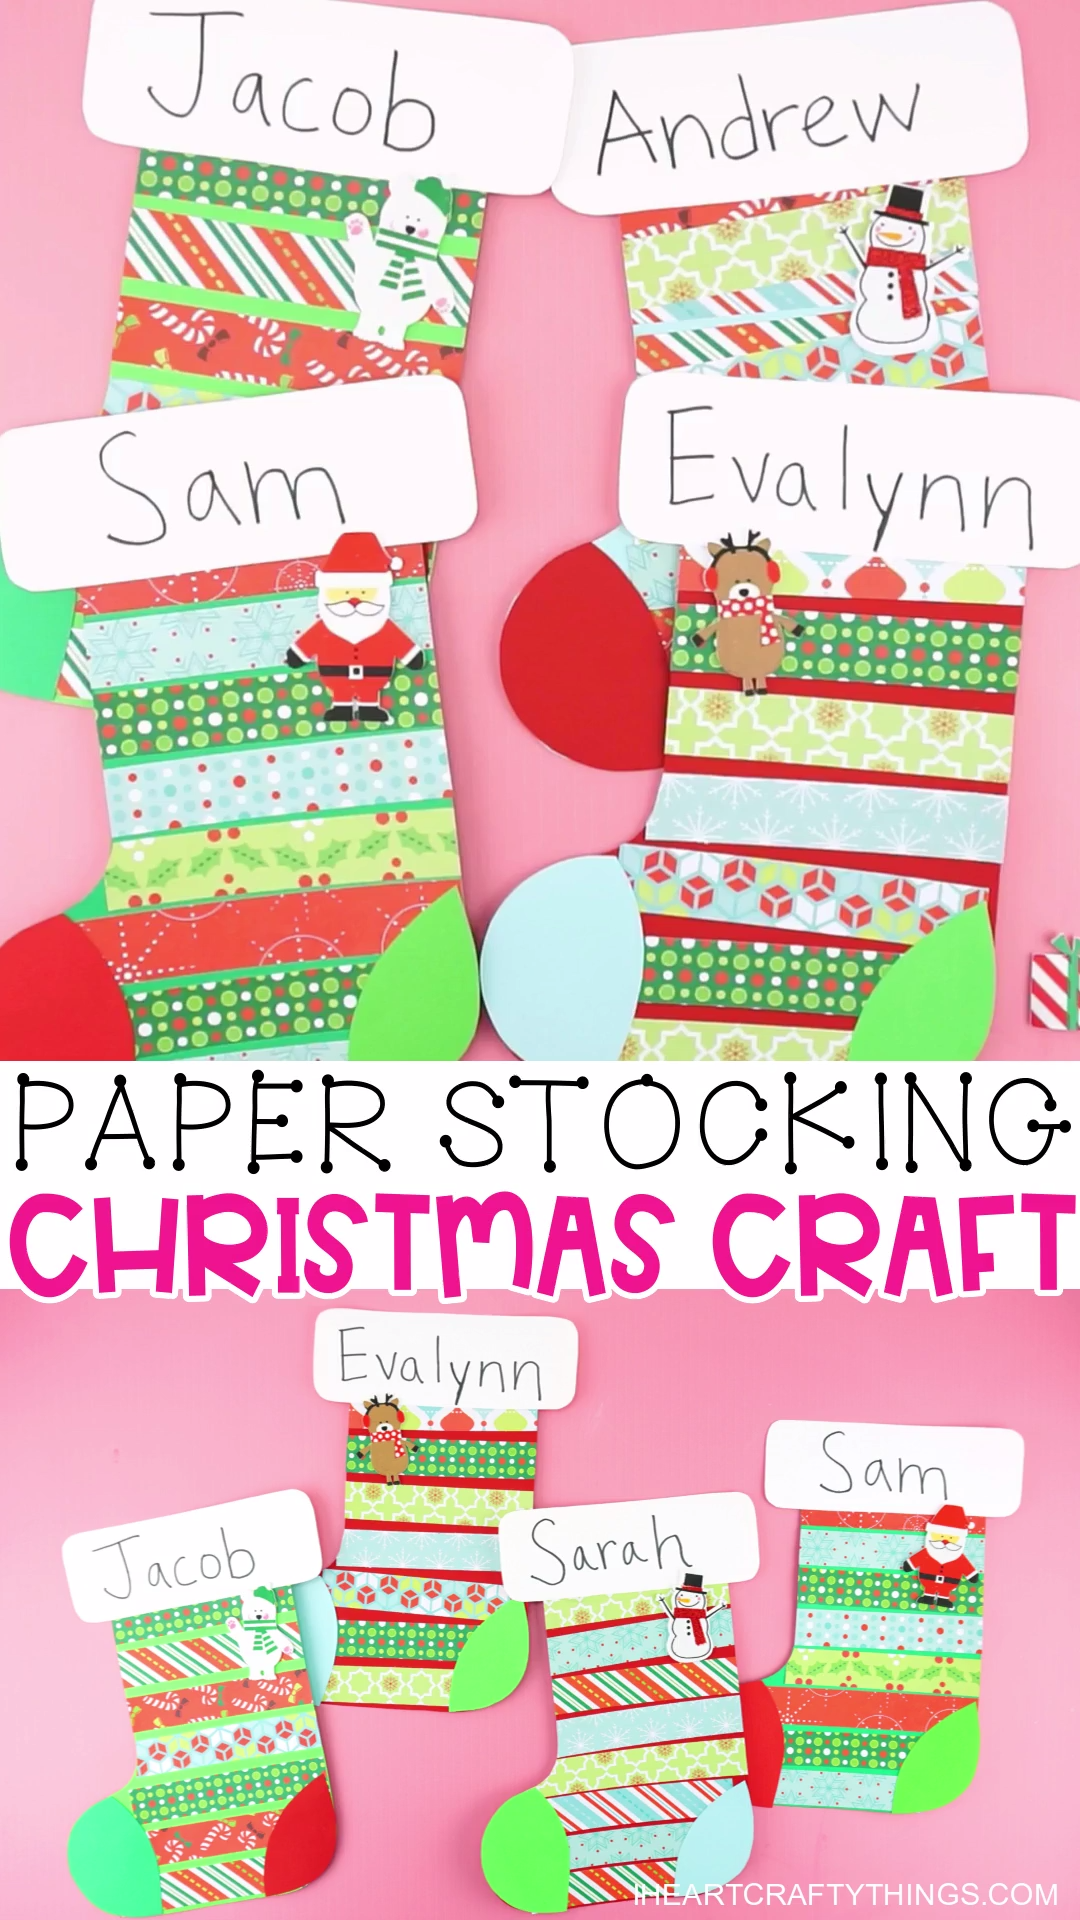 Paper Stocking Christmas Craft for Kids